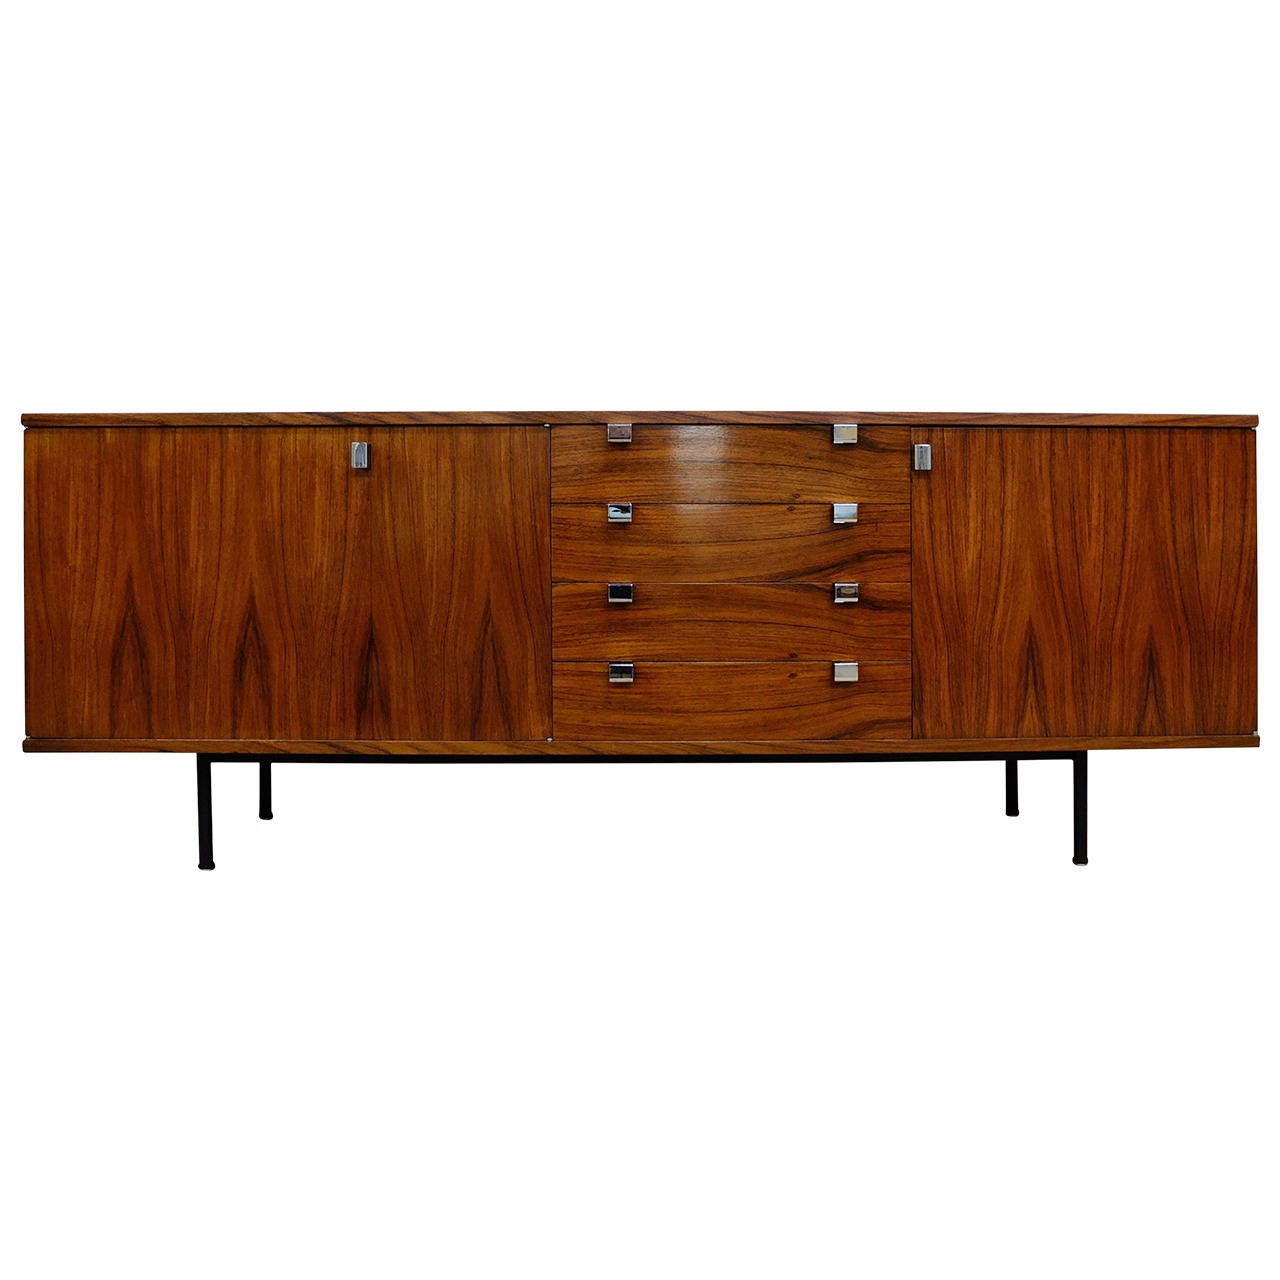 Alain richard palisander sideboard for meuble tv 1960 at for Meuble furniture